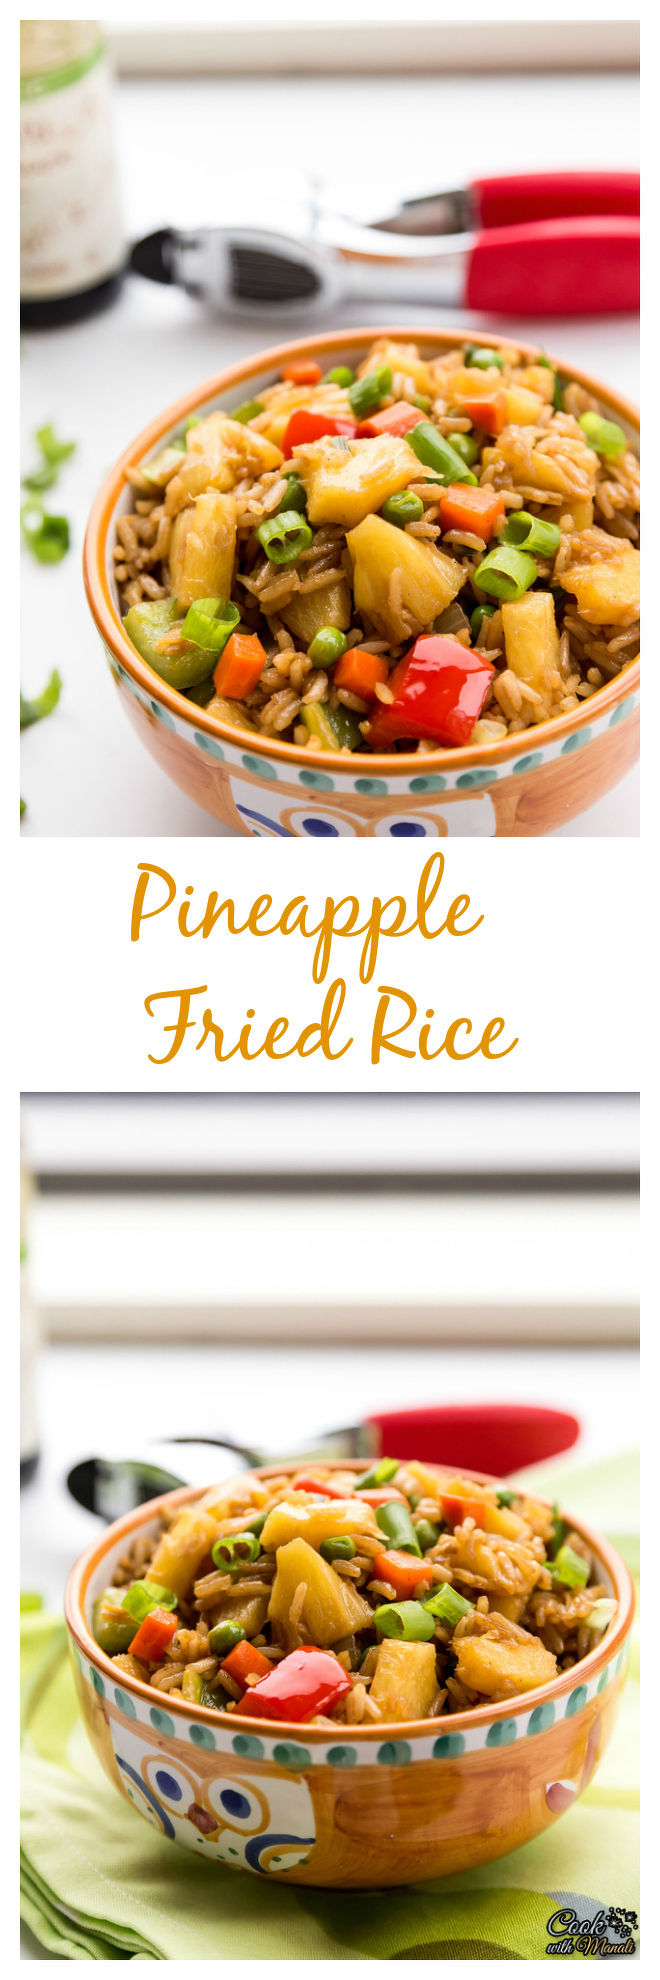 Pineapple-Fried-Rice-Collage-nocwm